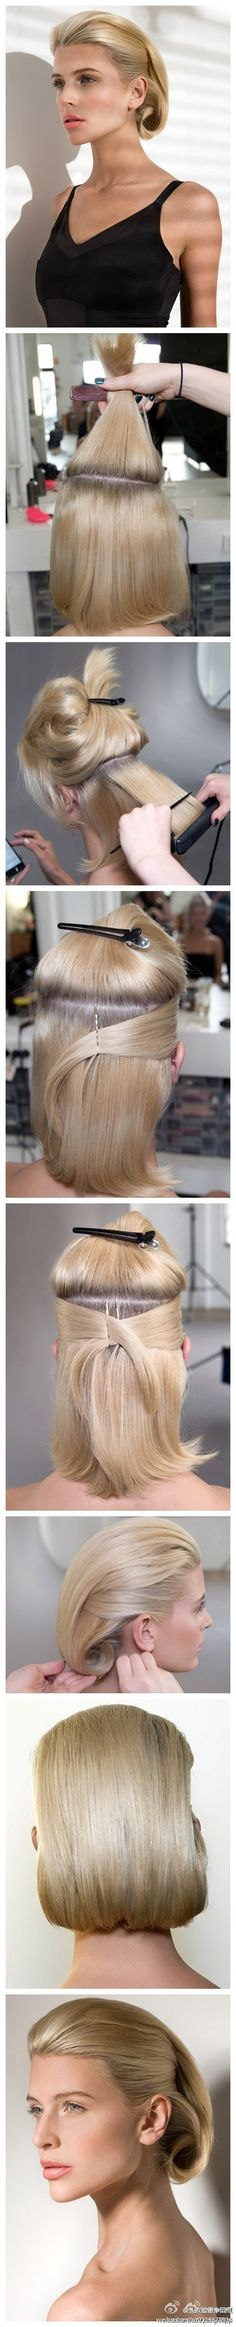 Super Sleek Hairstyle. Straight back with side detail and tucked under. Great for those with shorter hair. Glam it up with a statement piece like a rhinestone or pearl comb!